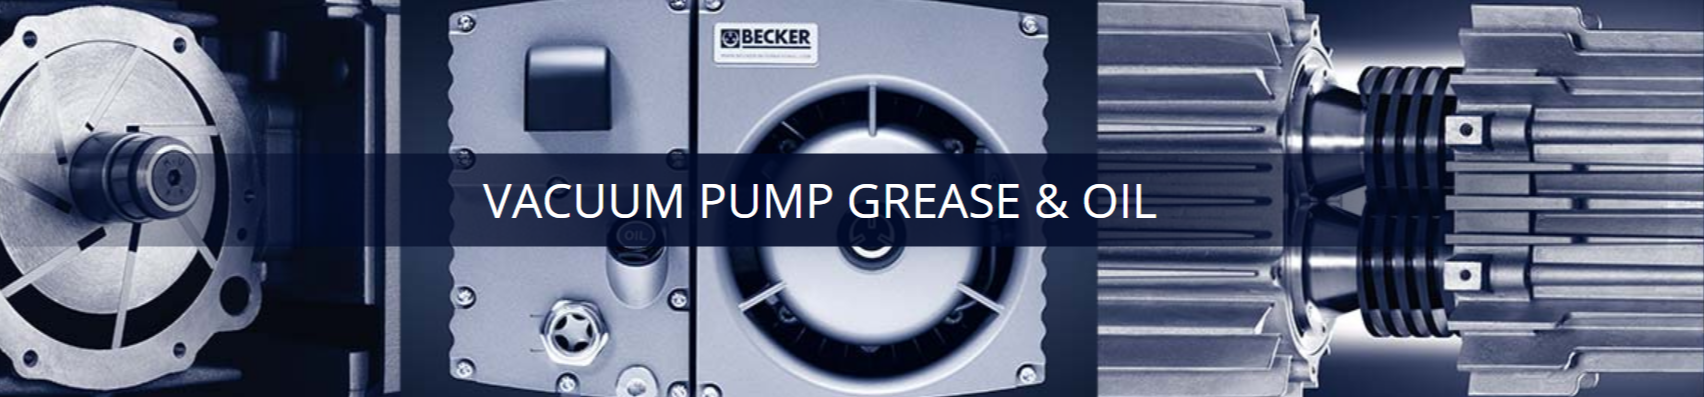 Vacuum pump oil and grease.